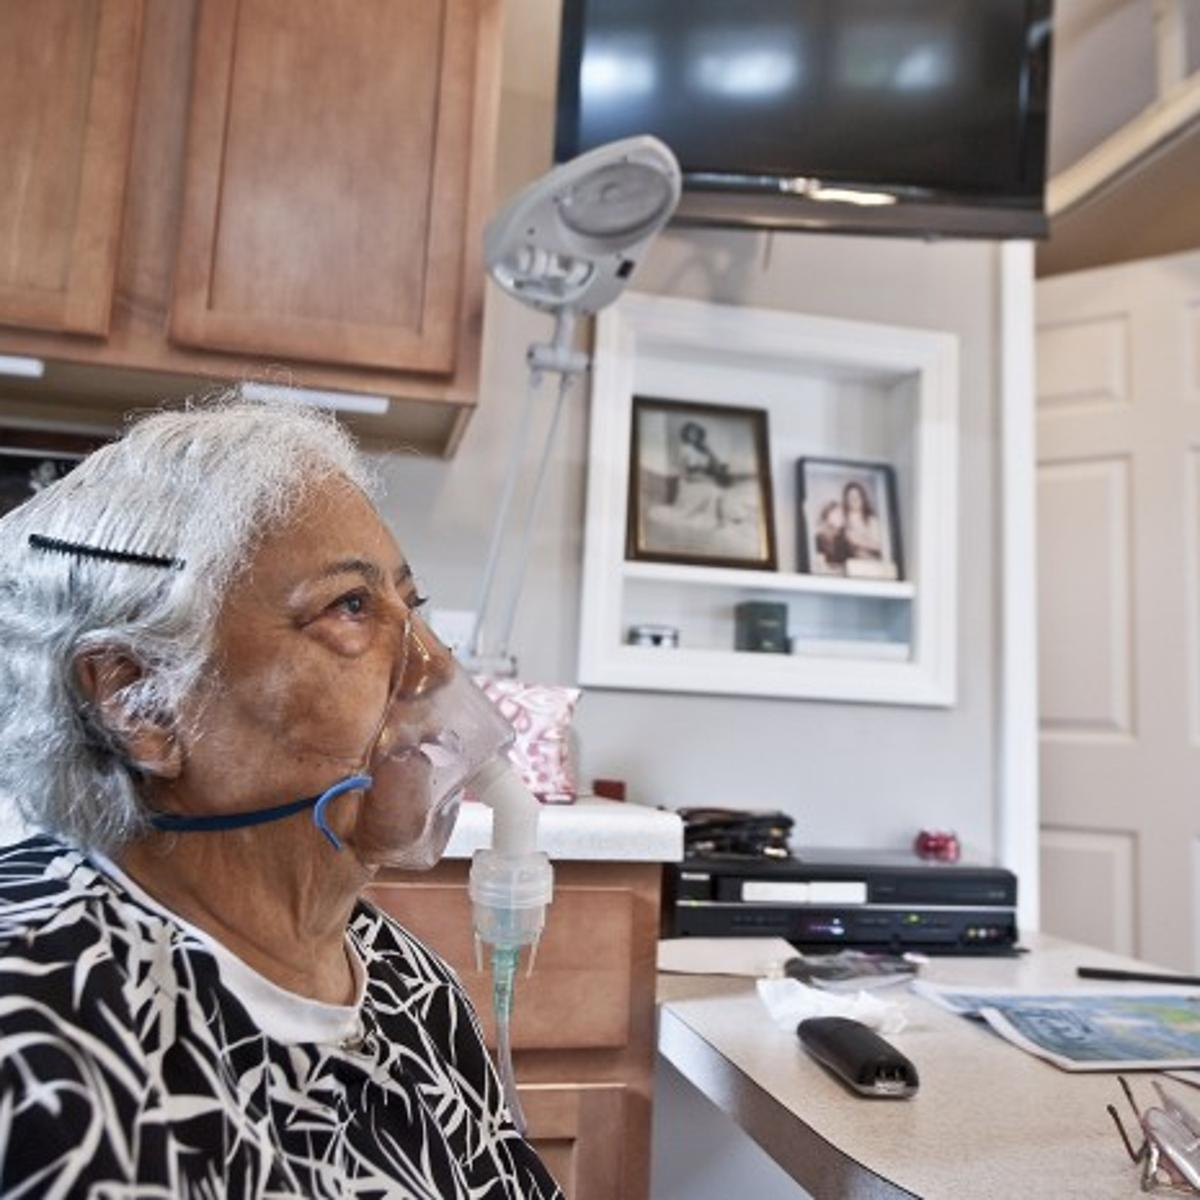 Granny Pods Could Change Elder Care Health And Medicine